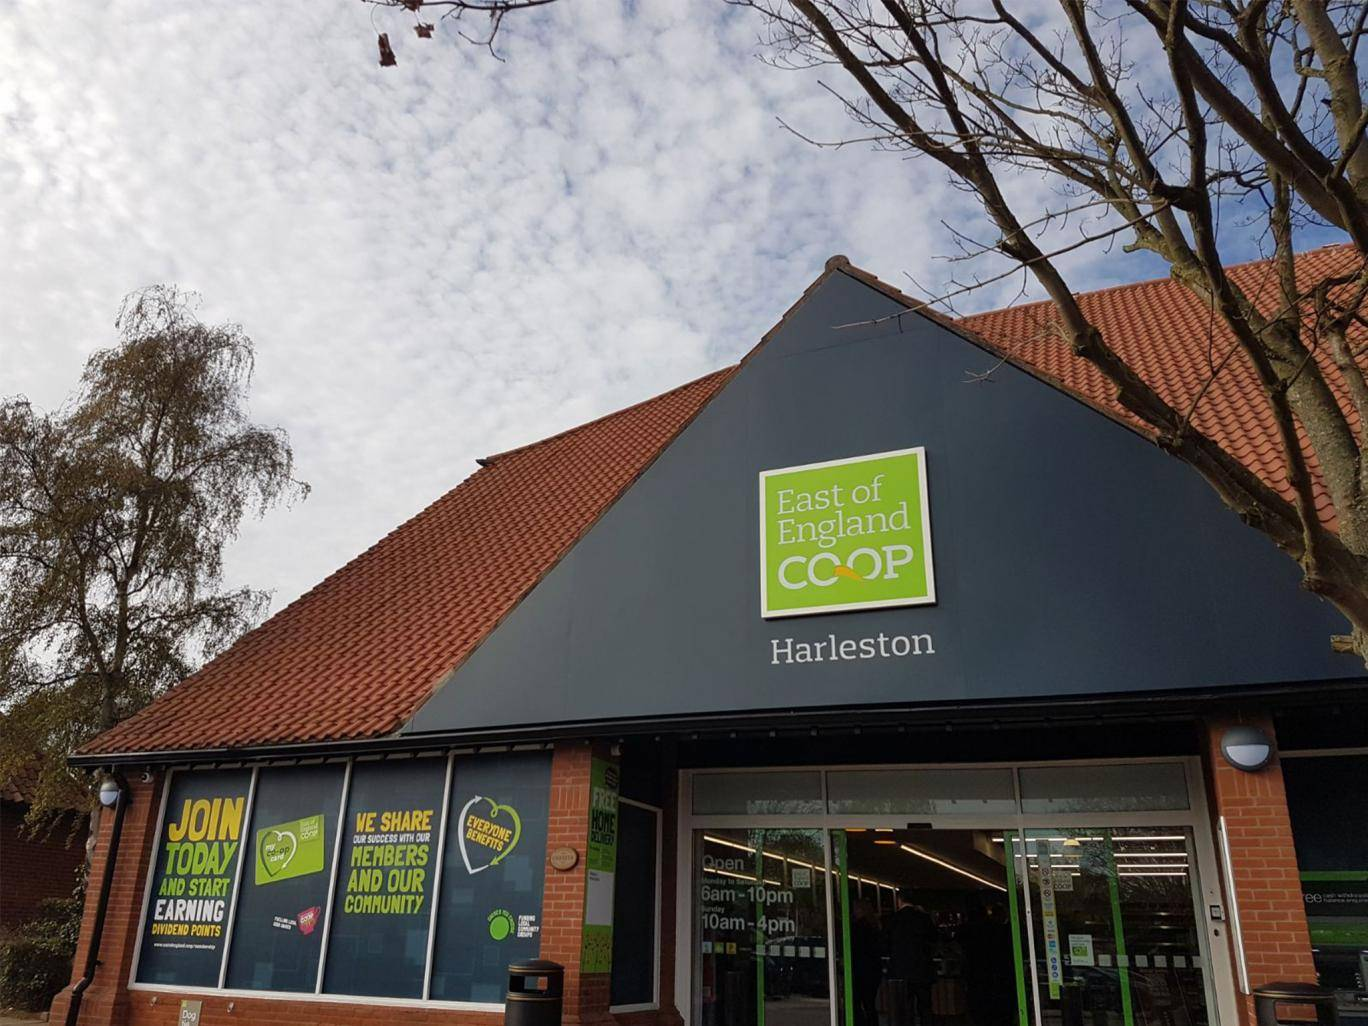 Co-op becomes first supermarket to sell food past its 'best before' date in bid to tackle waste